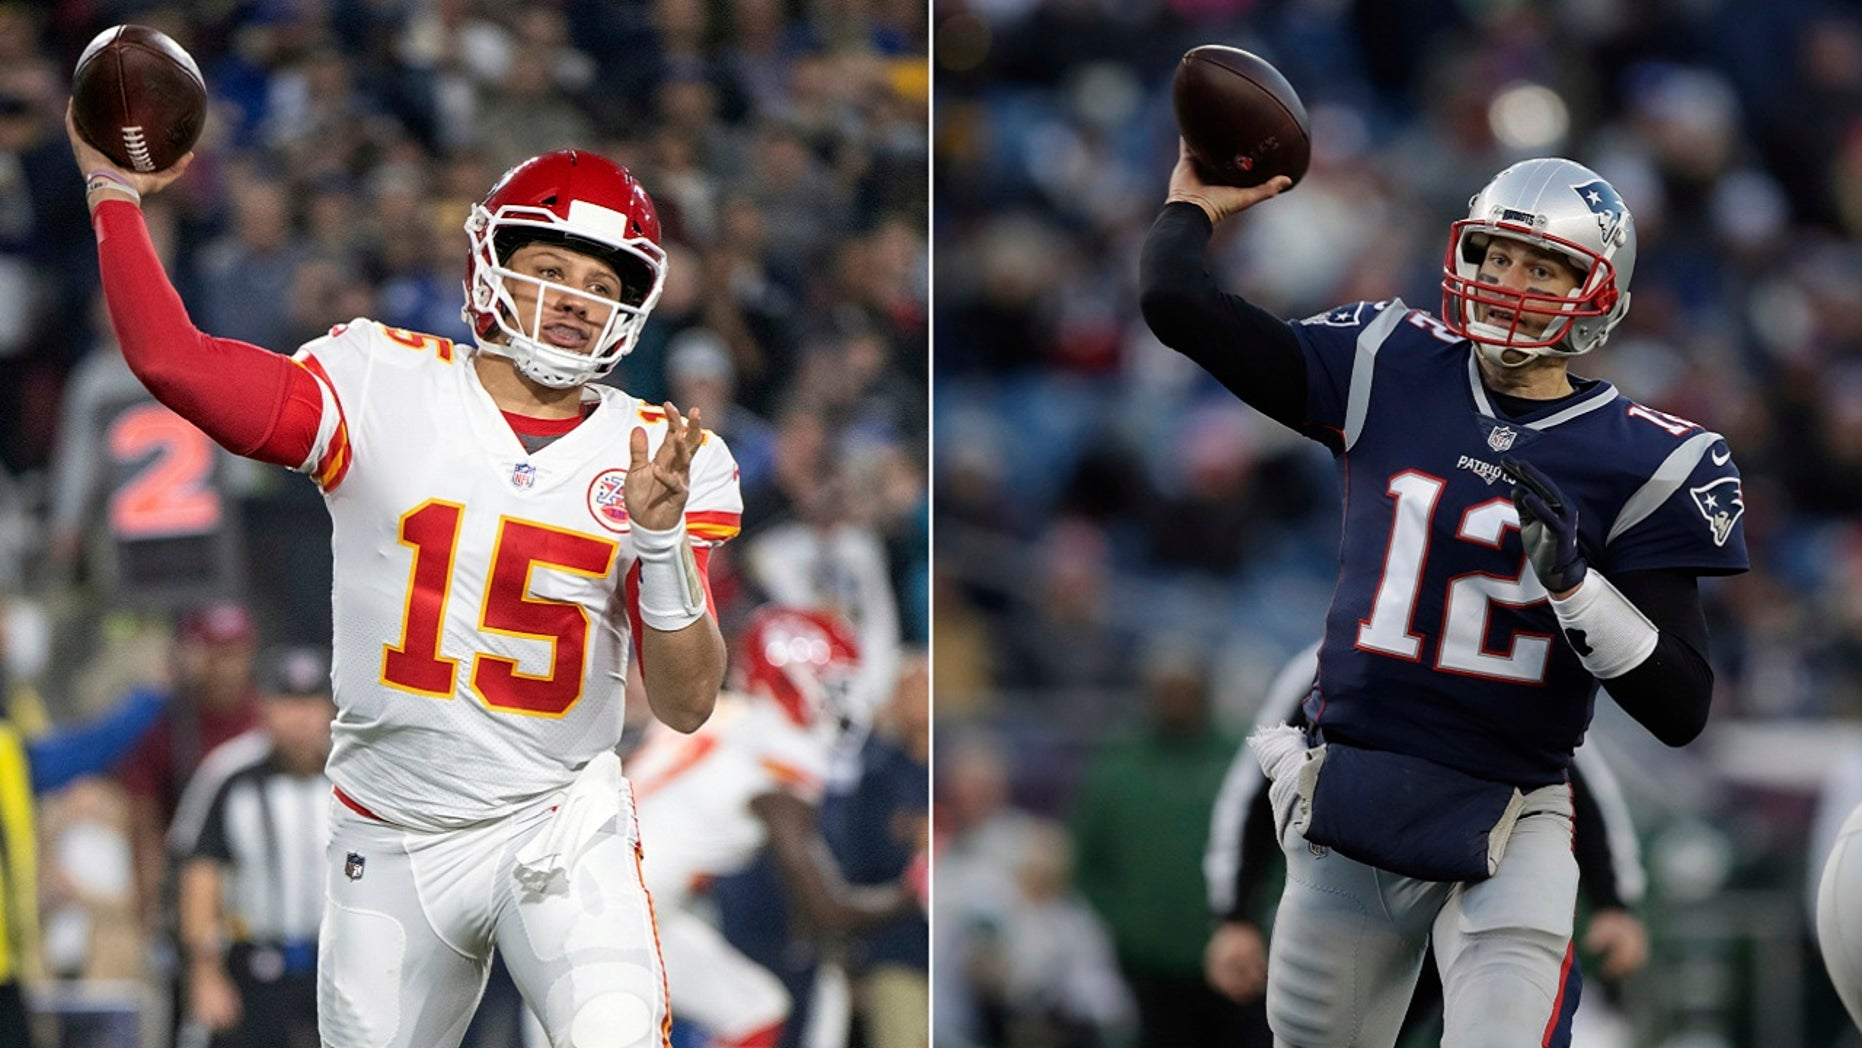 Quarterbacks Patrick Mahomes,left, of the Kansas City Chiefs, and Tom Brady of the New England Patriots will face each other in Sunday's AFC Championship Game in Kansas City. The winning team wil advance to the Super Bowl. (Associated Press)